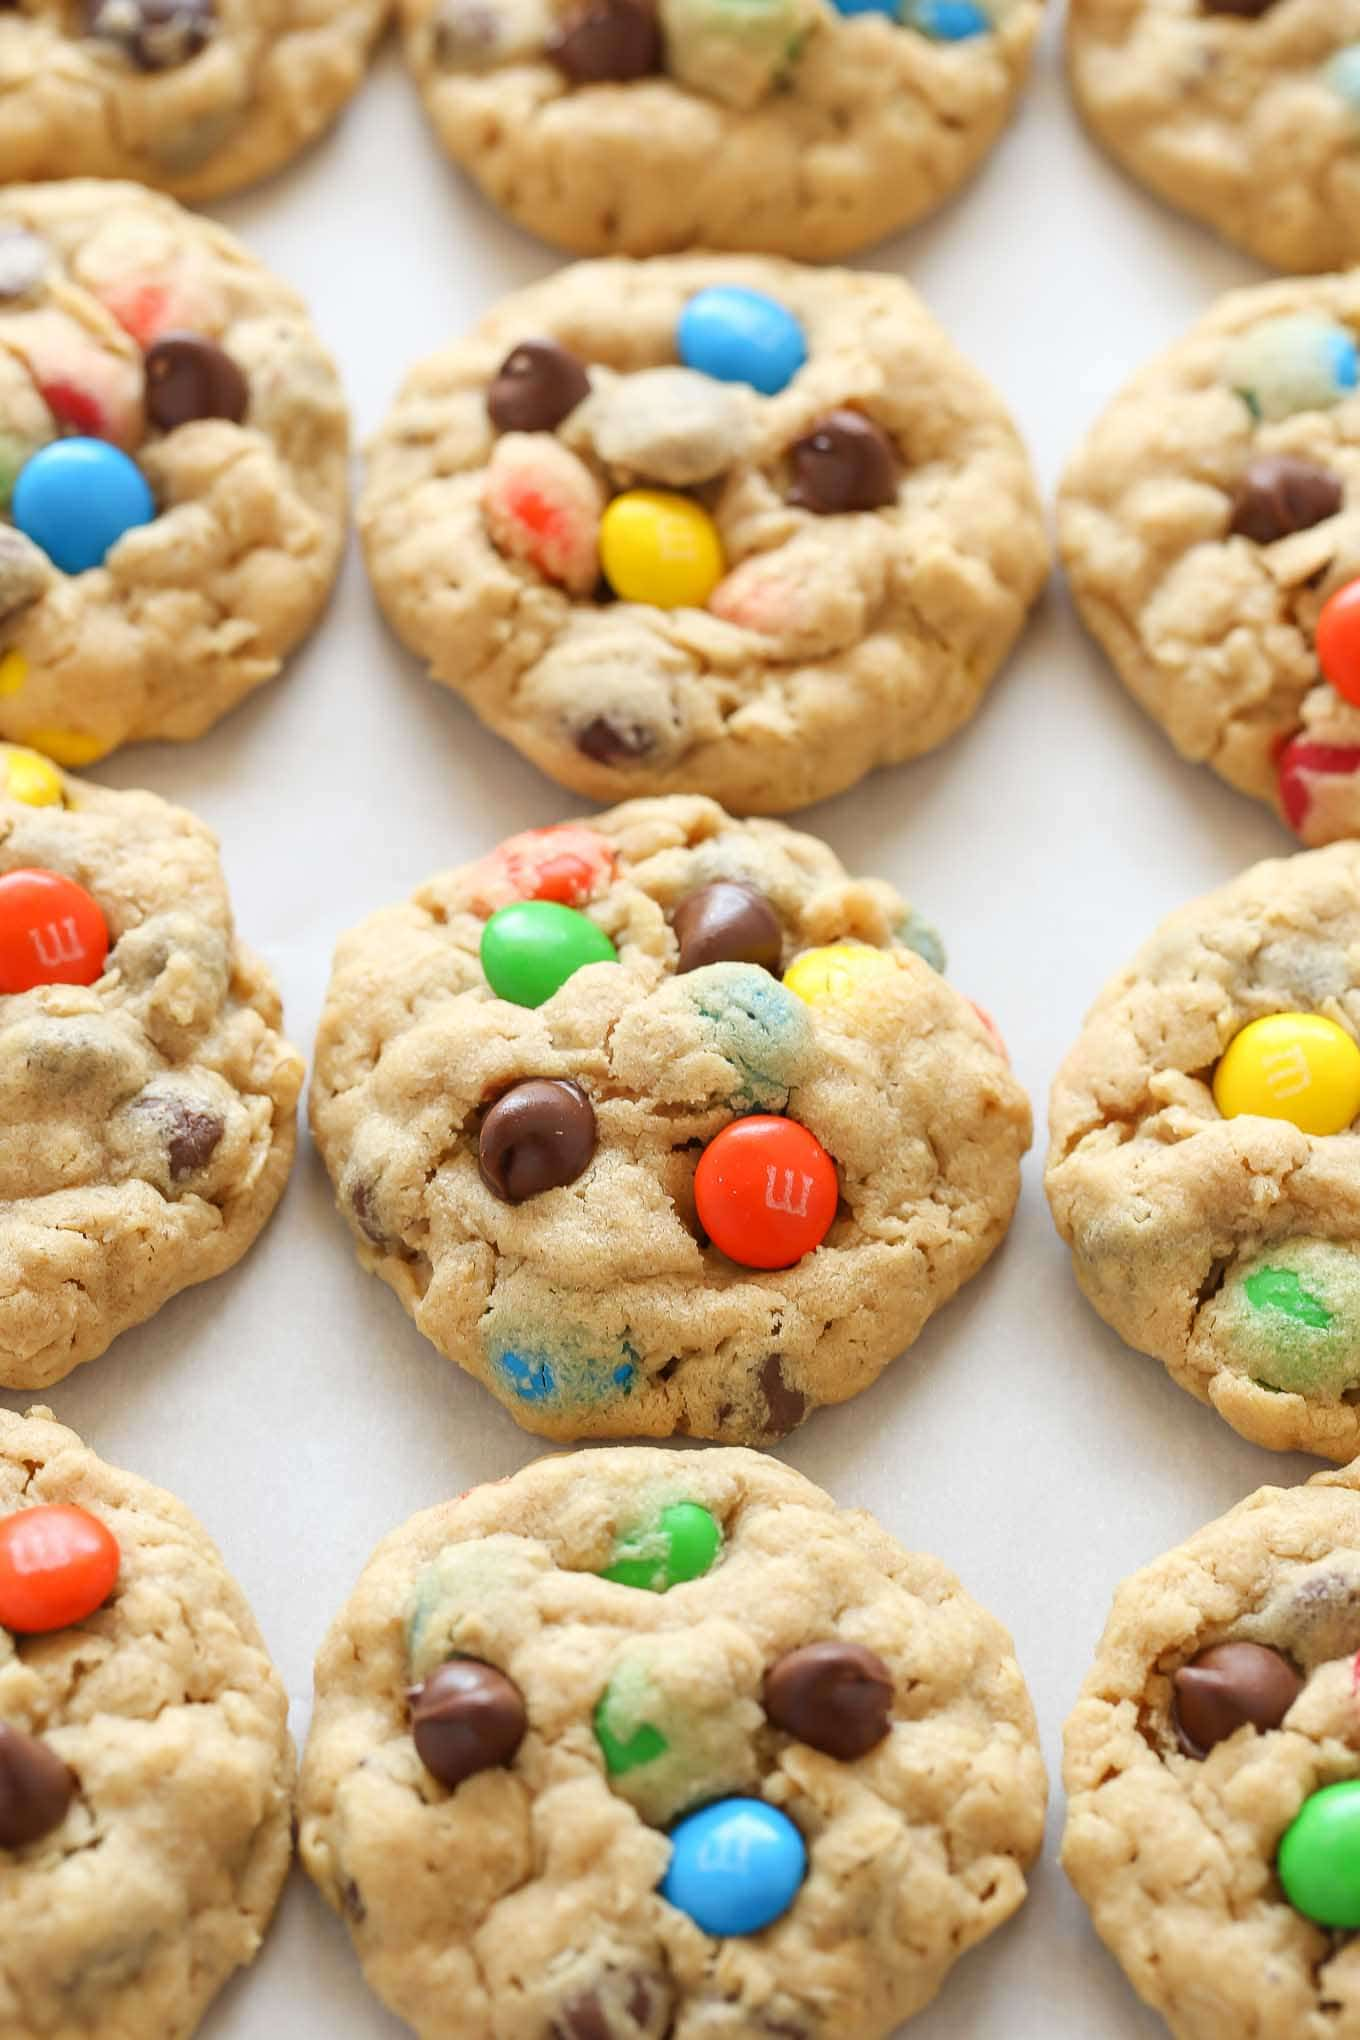 Peanut butter oatmeal cookies packed with m&m's and chocolate chips. These monster cookies are incredibly soft, chewy, thick, and so easy to make!